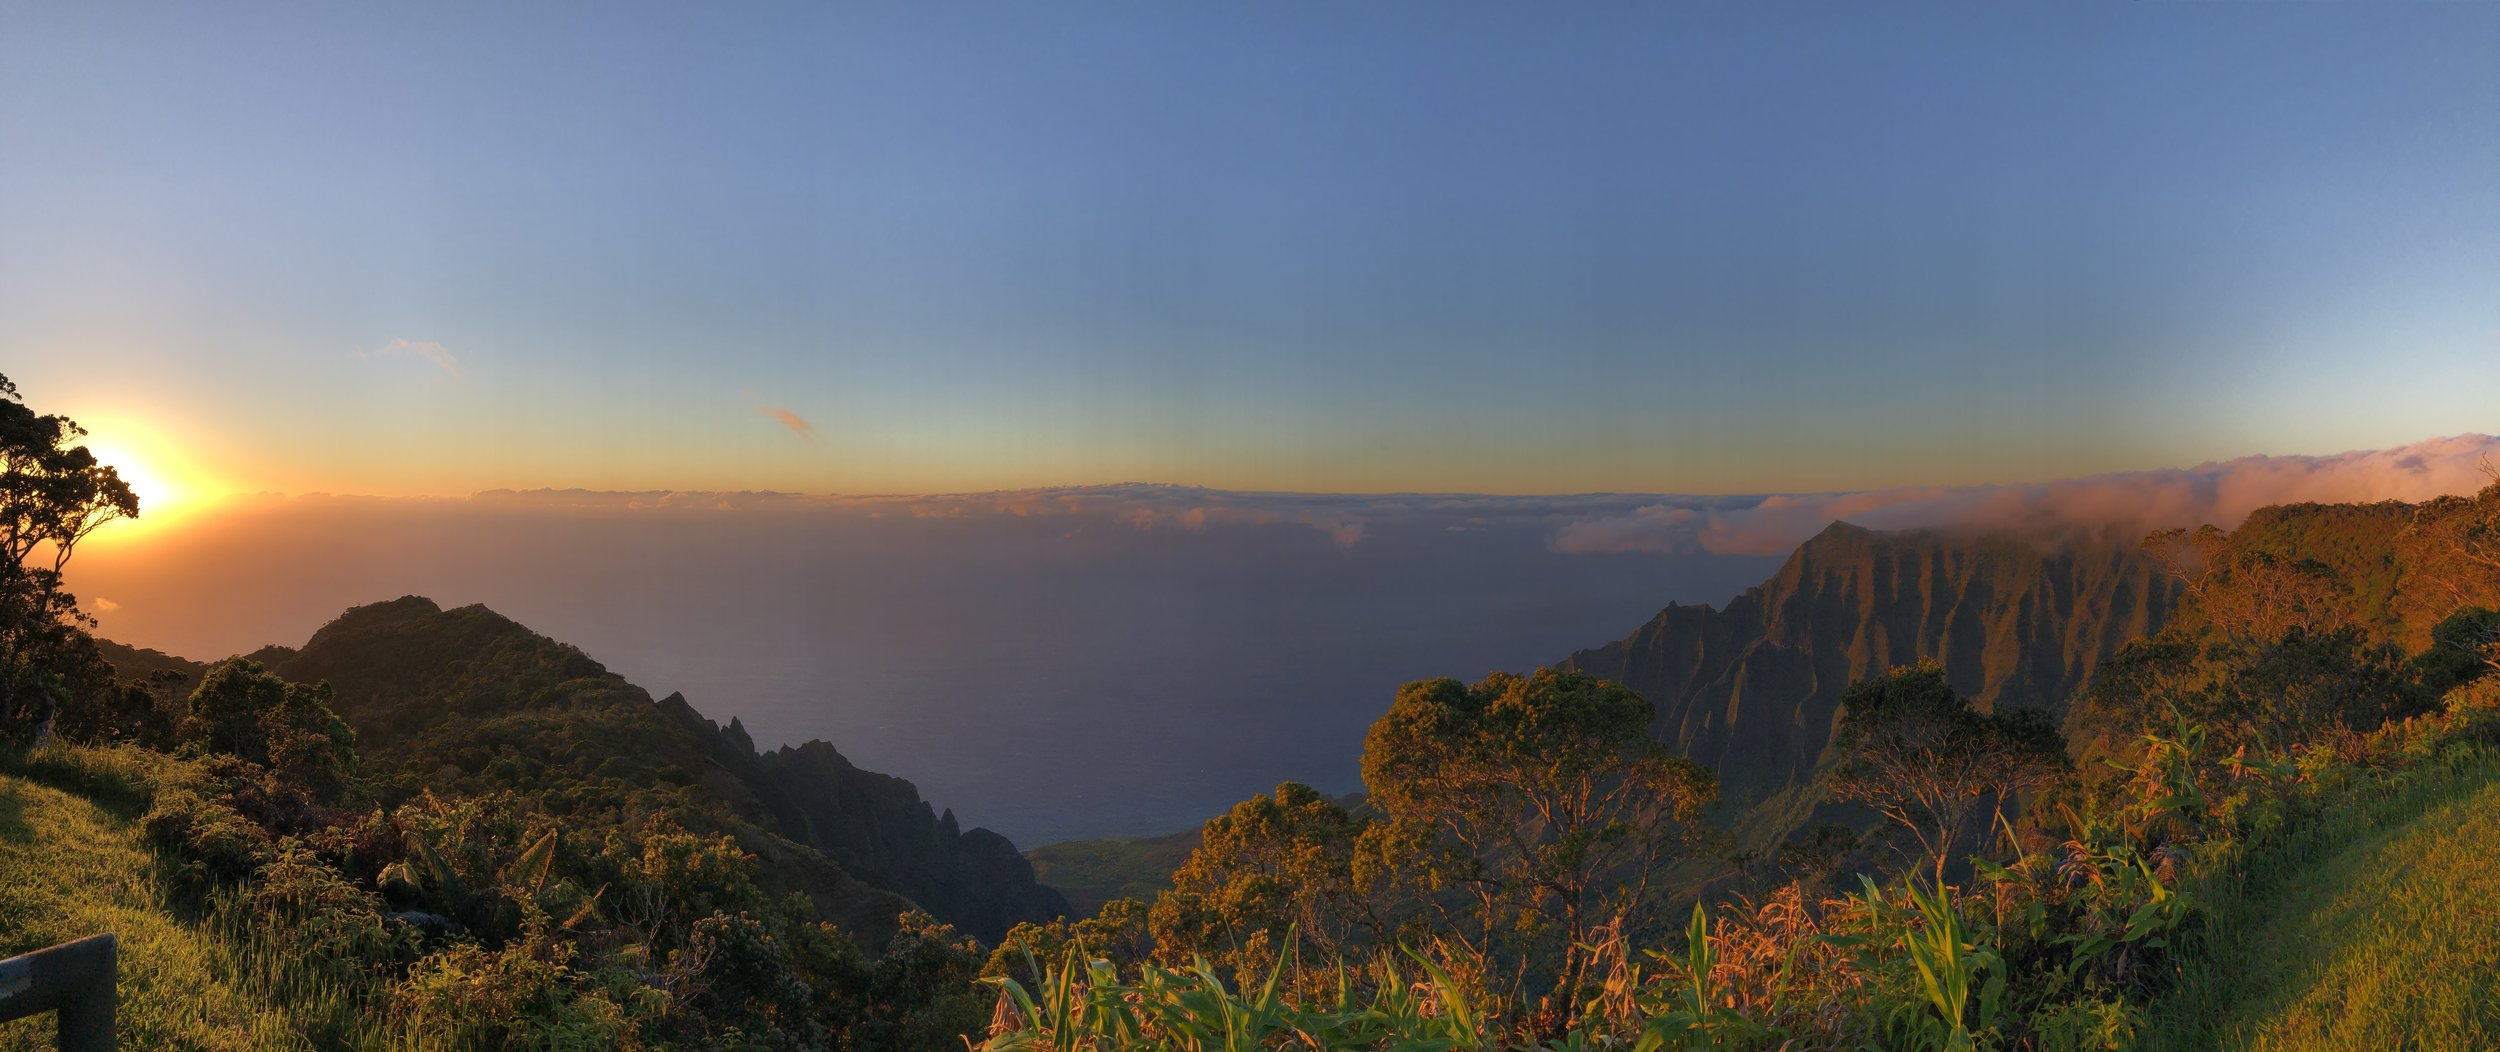 Koke'e State Park - Kalalau Valley Lookout - Sunset